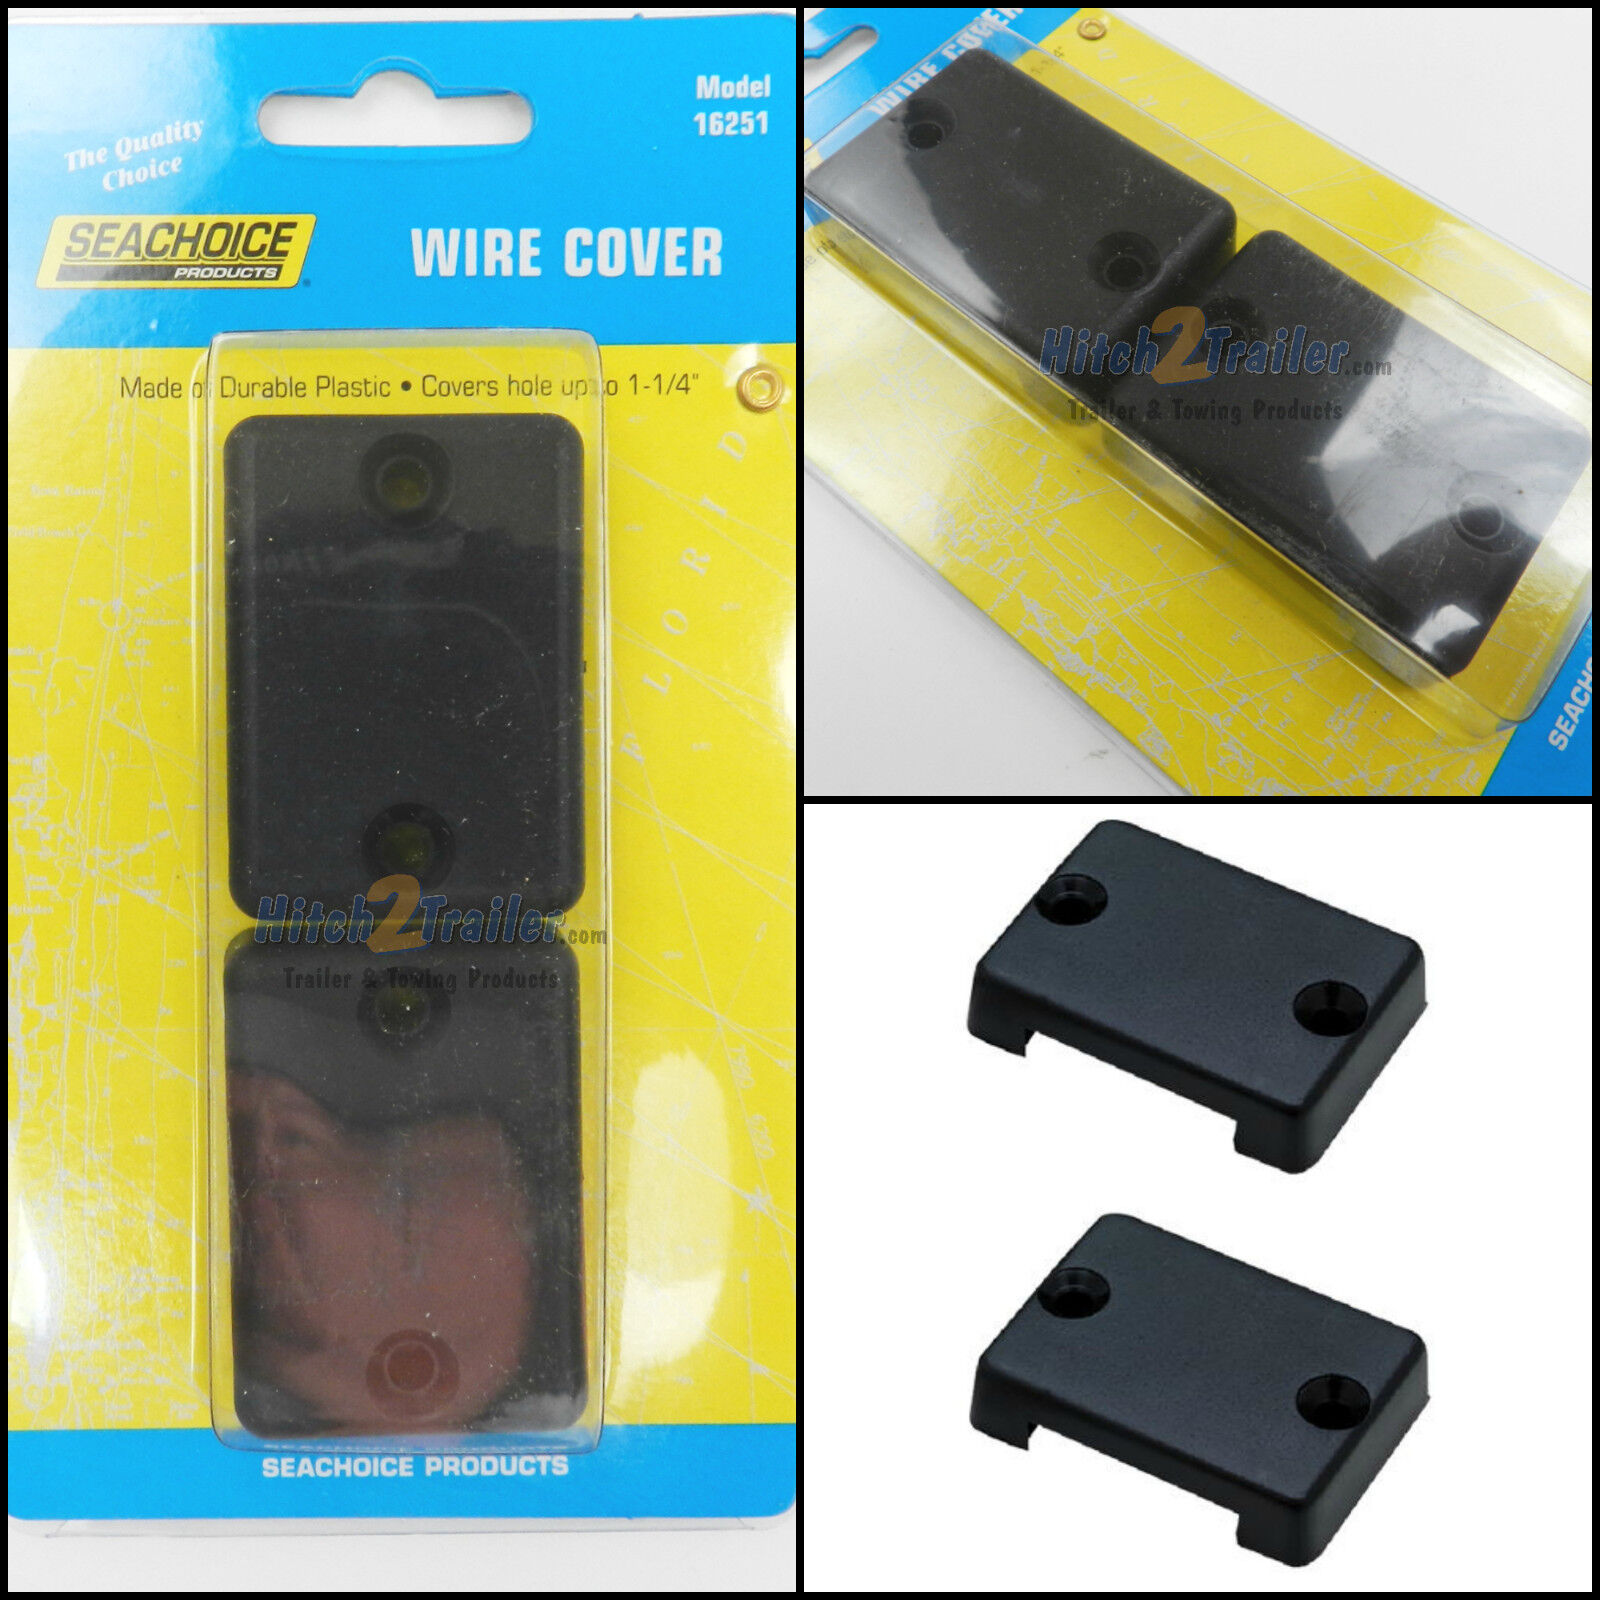 """2-Pack SeaChoice 16251 Black Plastic Wire or Cable Covers for Holes up to 1-1/4"""""""